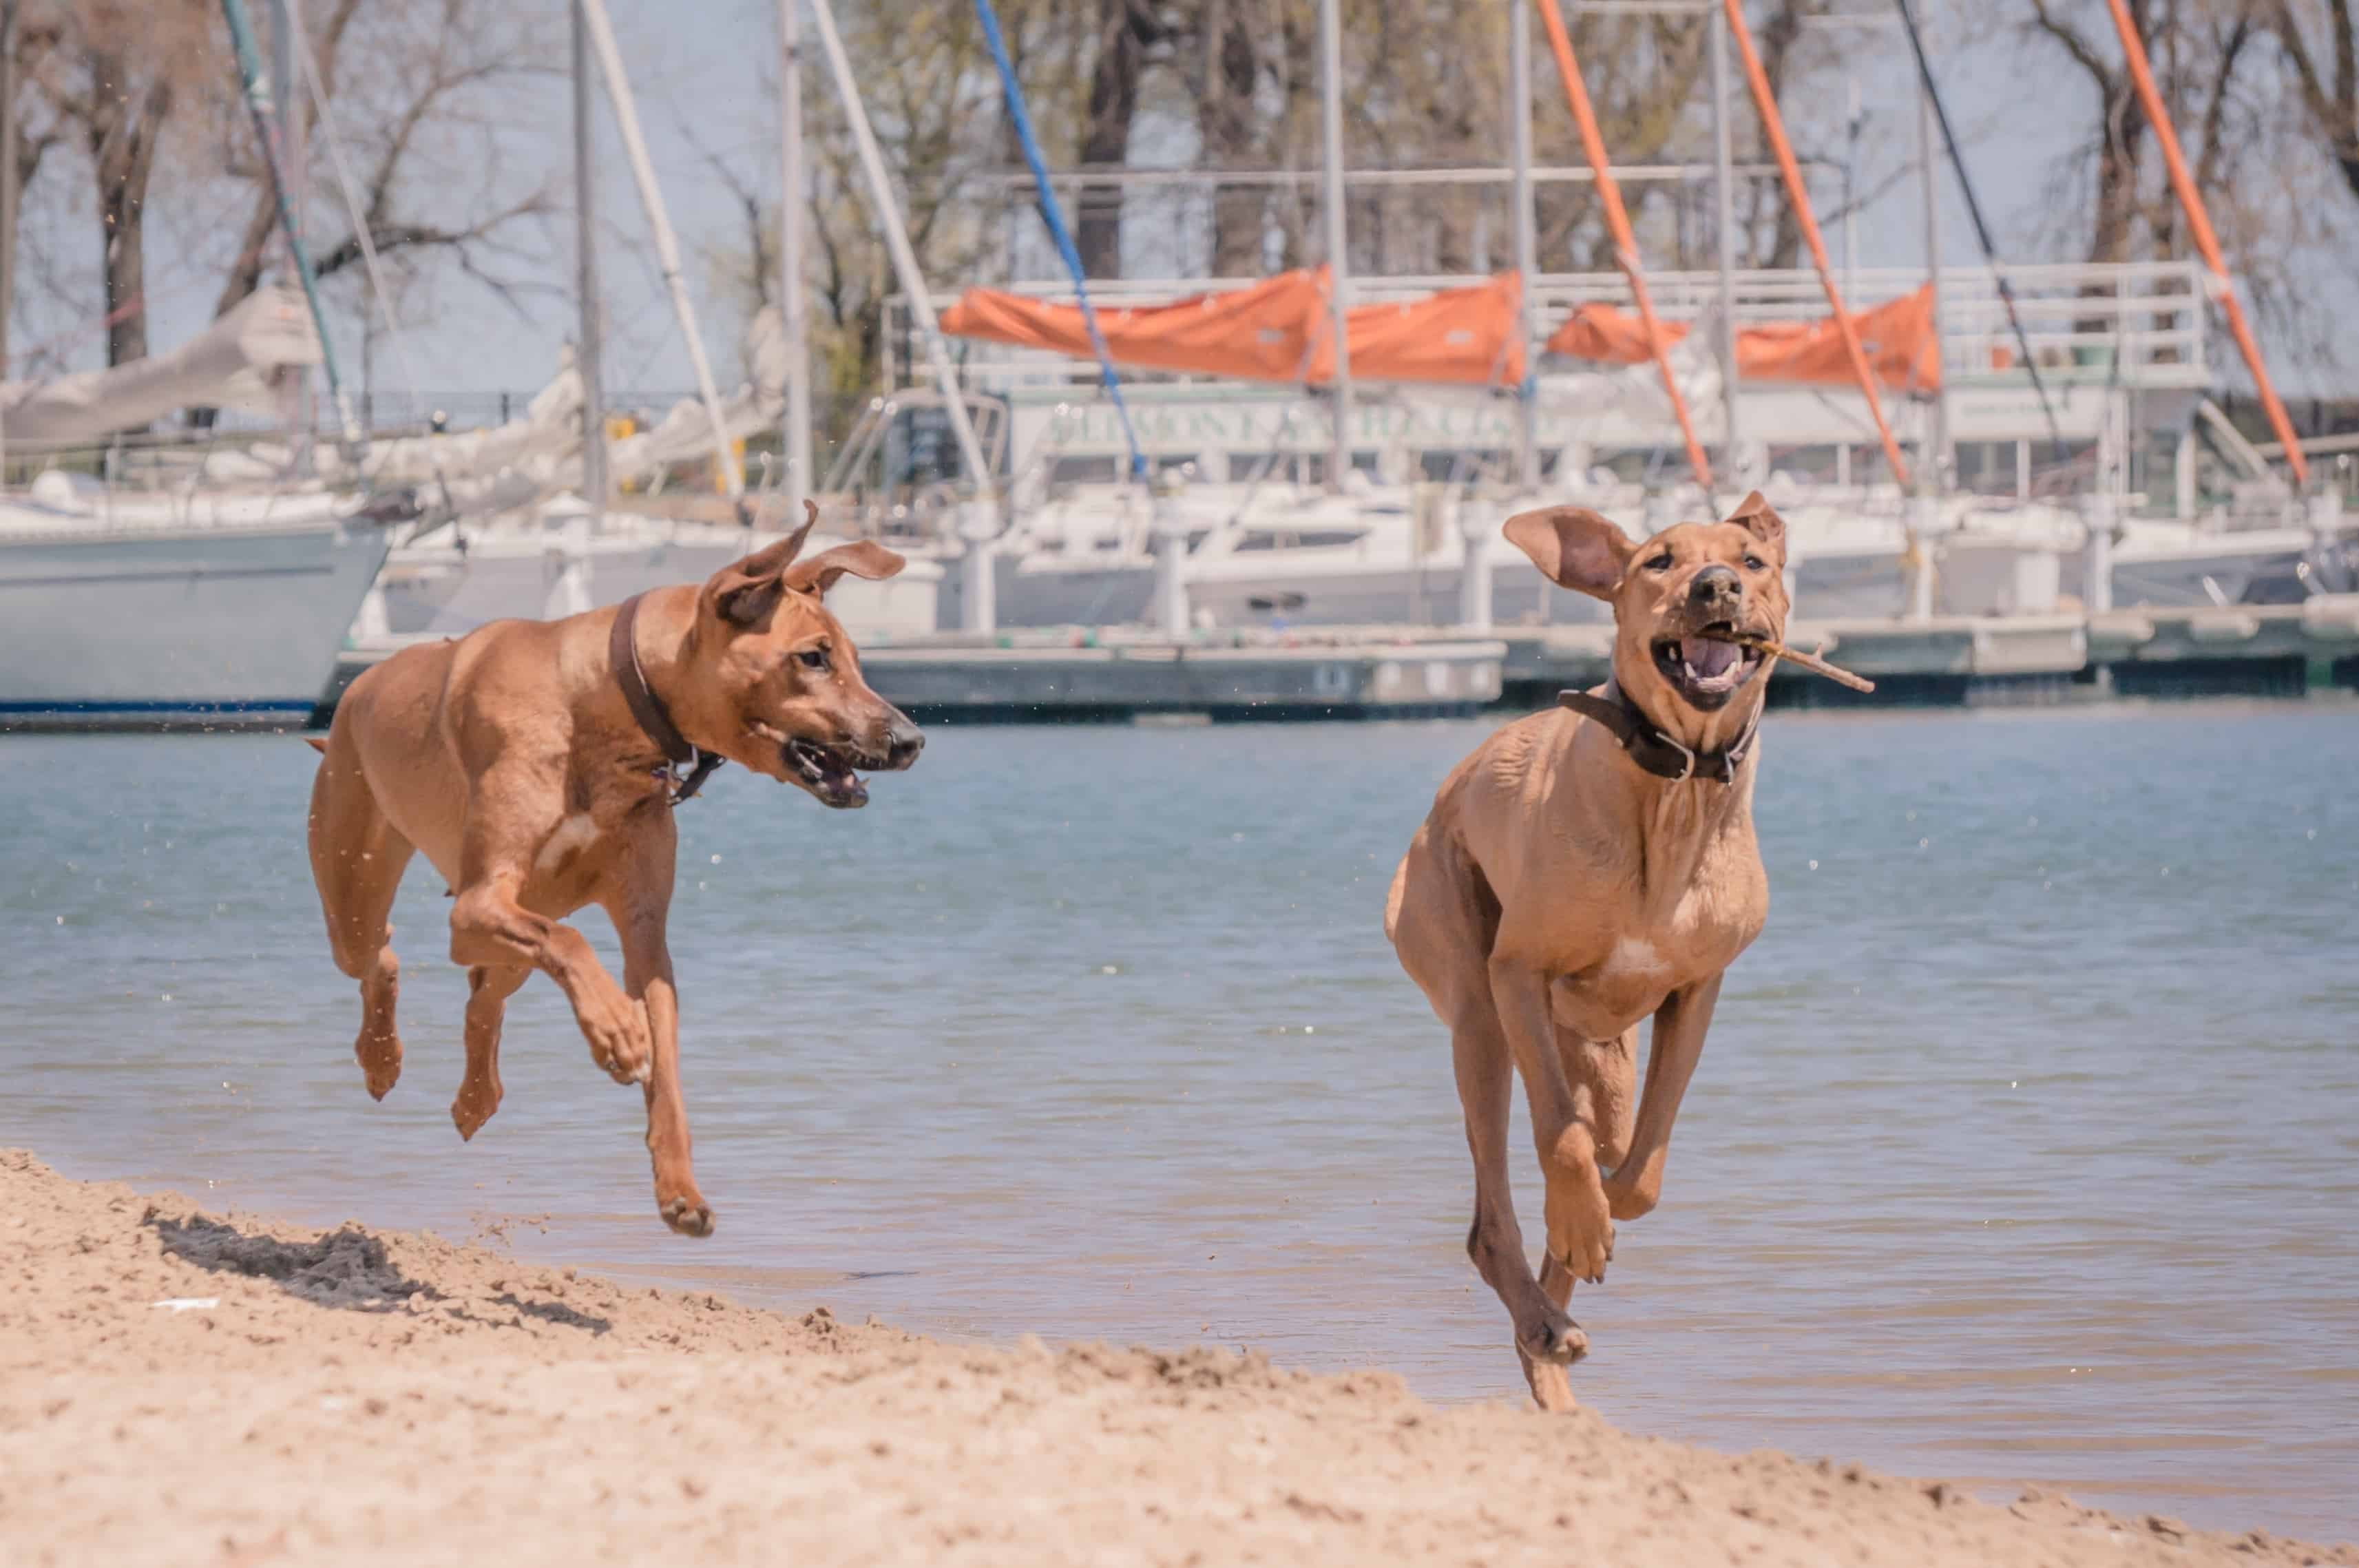 Rhodesian Ridgeback, puppy, chicago, adventure, dog beach